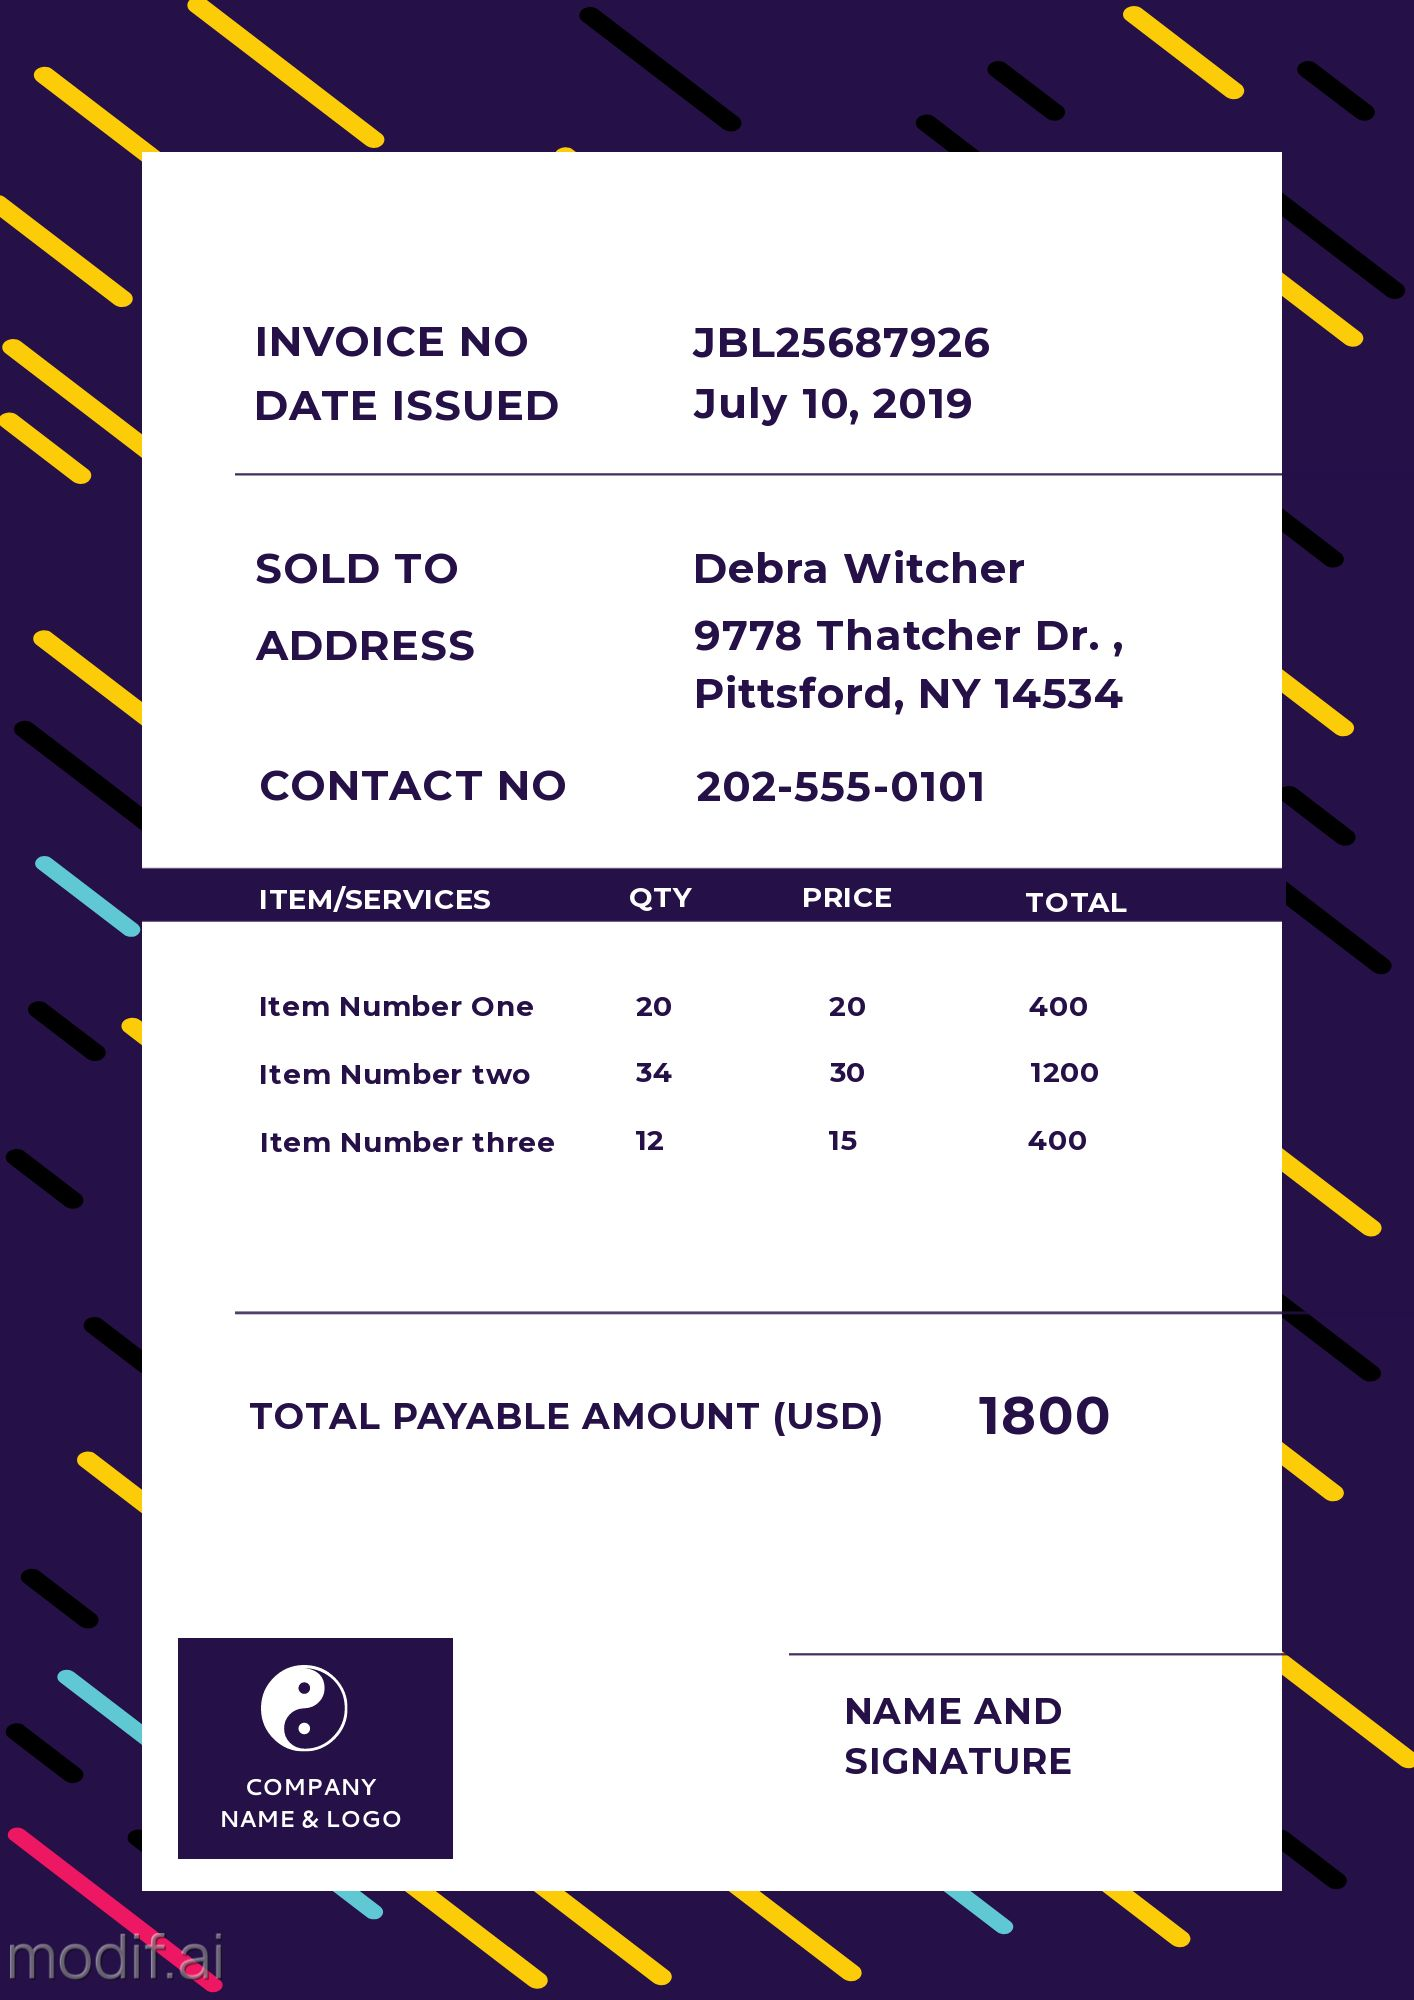 Invoice Design Template for Business Service